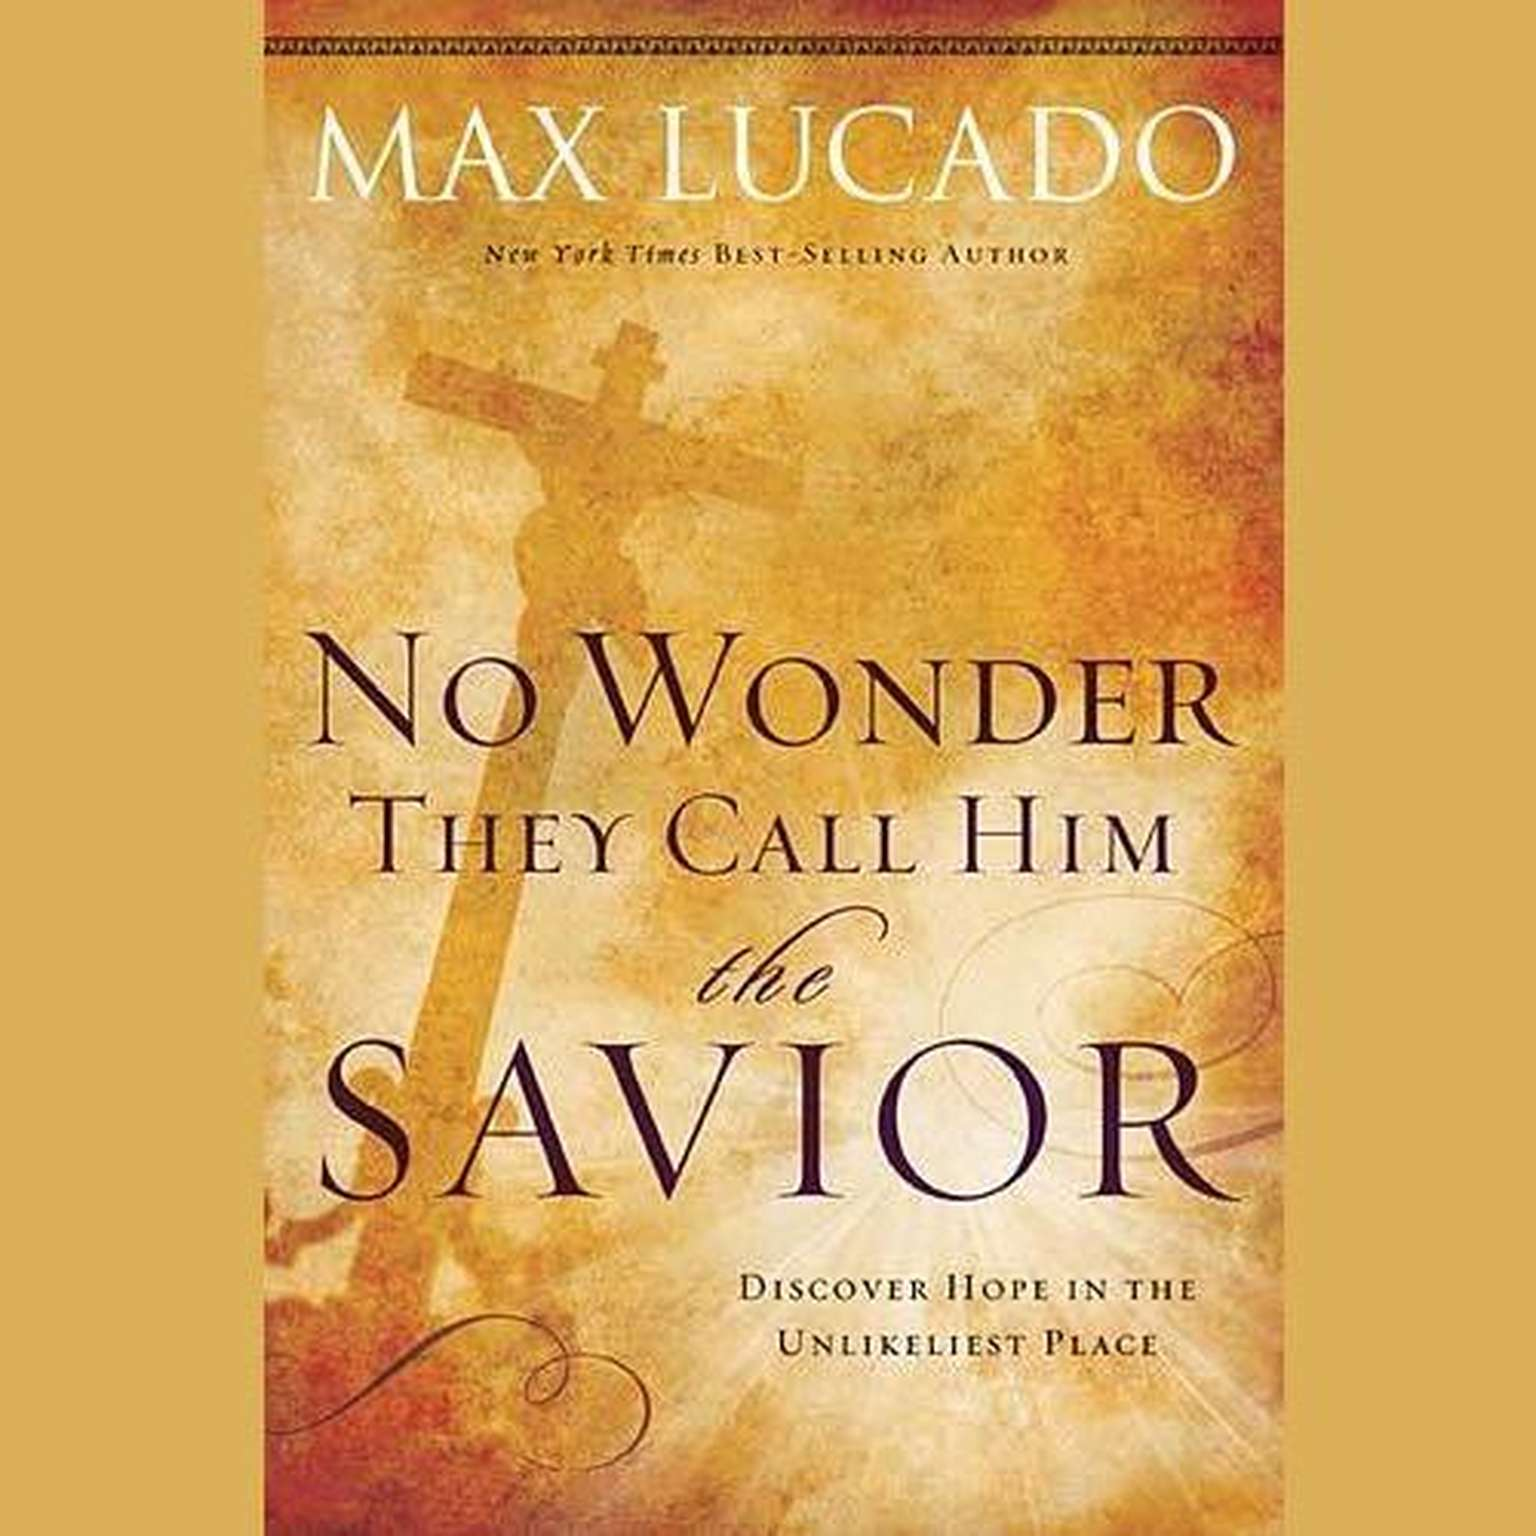 Printable No Wonder They Call Him the Savior: Discover Hope in the Unlikeliest Place Audiobook Cover Art